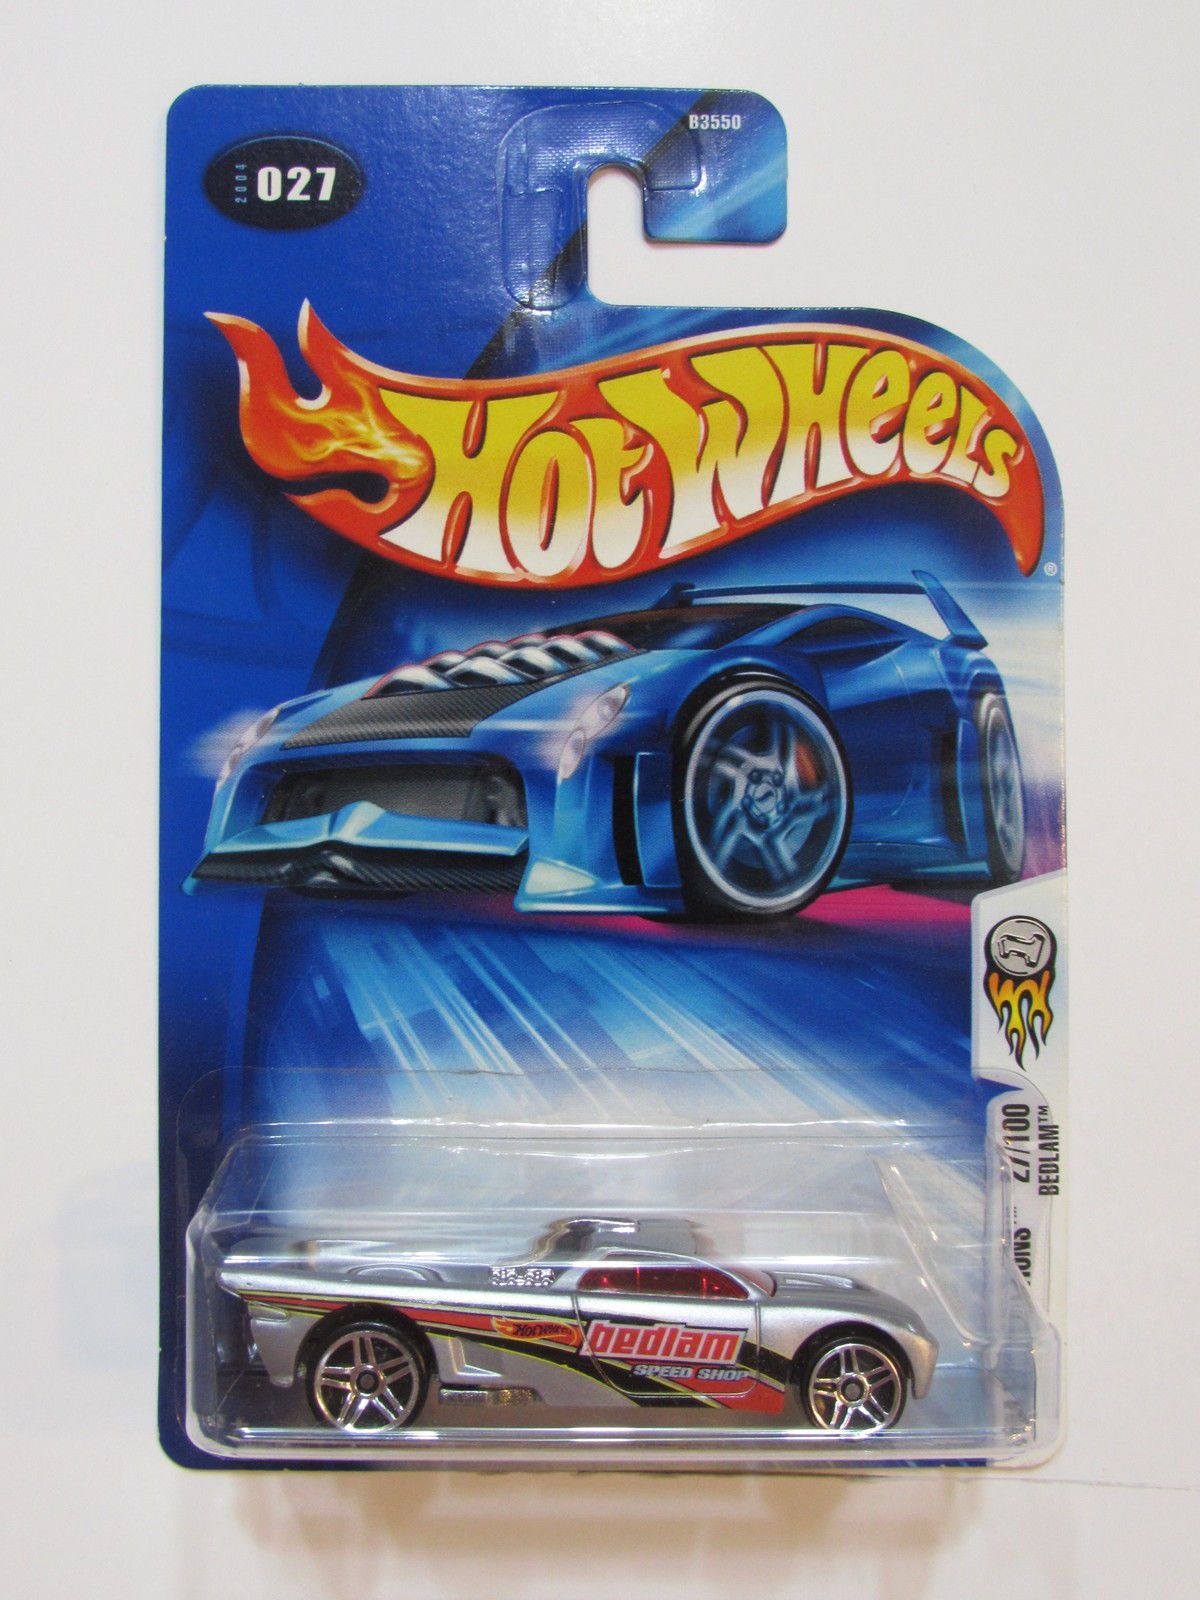 HOT WHEELS 2004 FIRST EDITIONS #27/100 BEDLAM SILVER